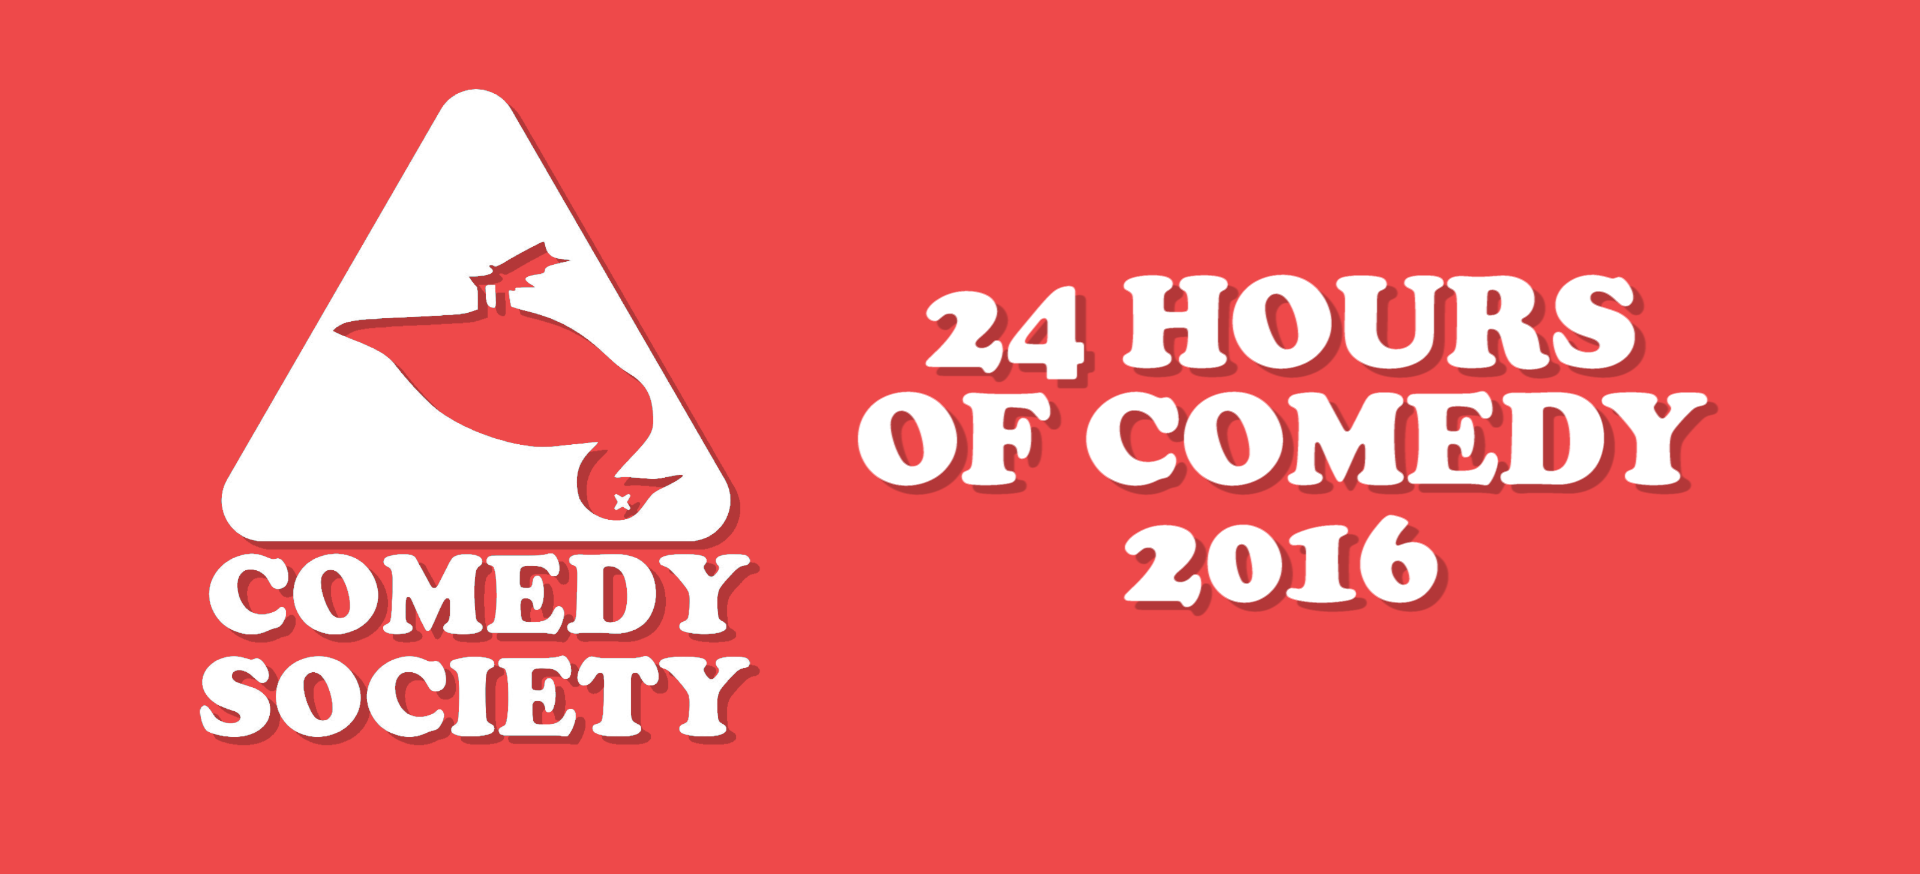 24 Hours of Comedy 2016